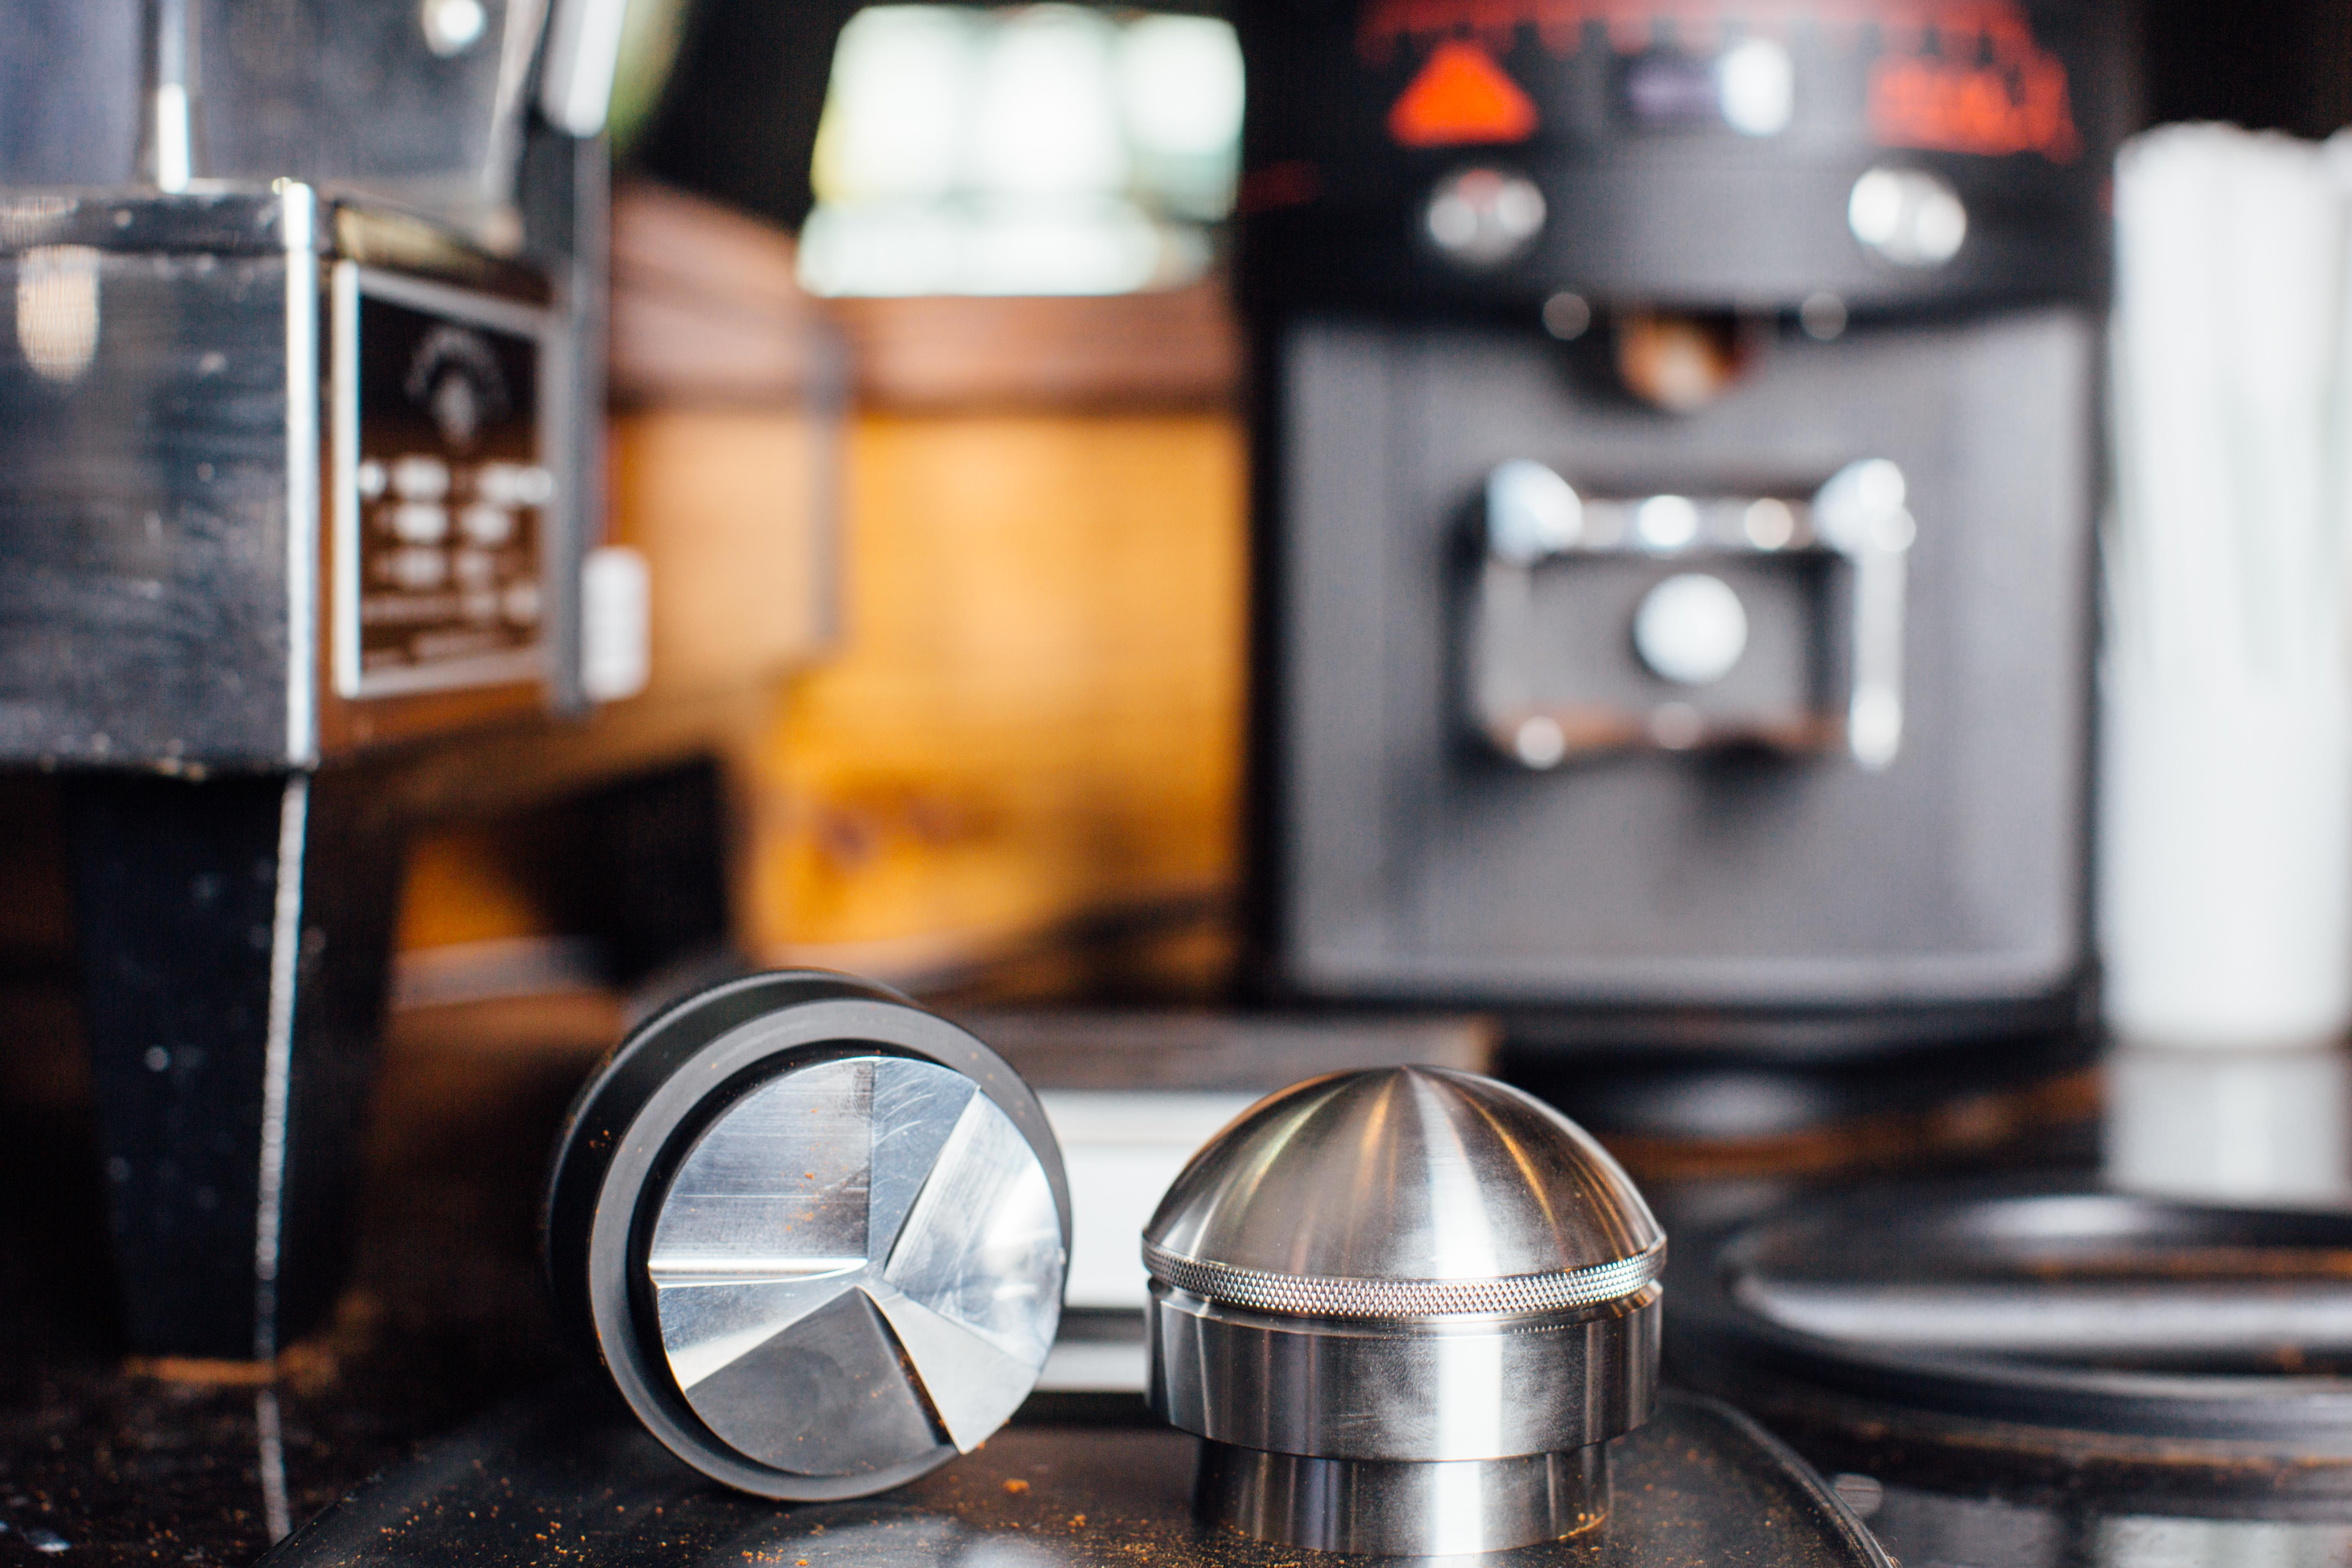 Mahlgut's puck-style tamping tools fit neatly into your bar flow and help improve your shot consistency